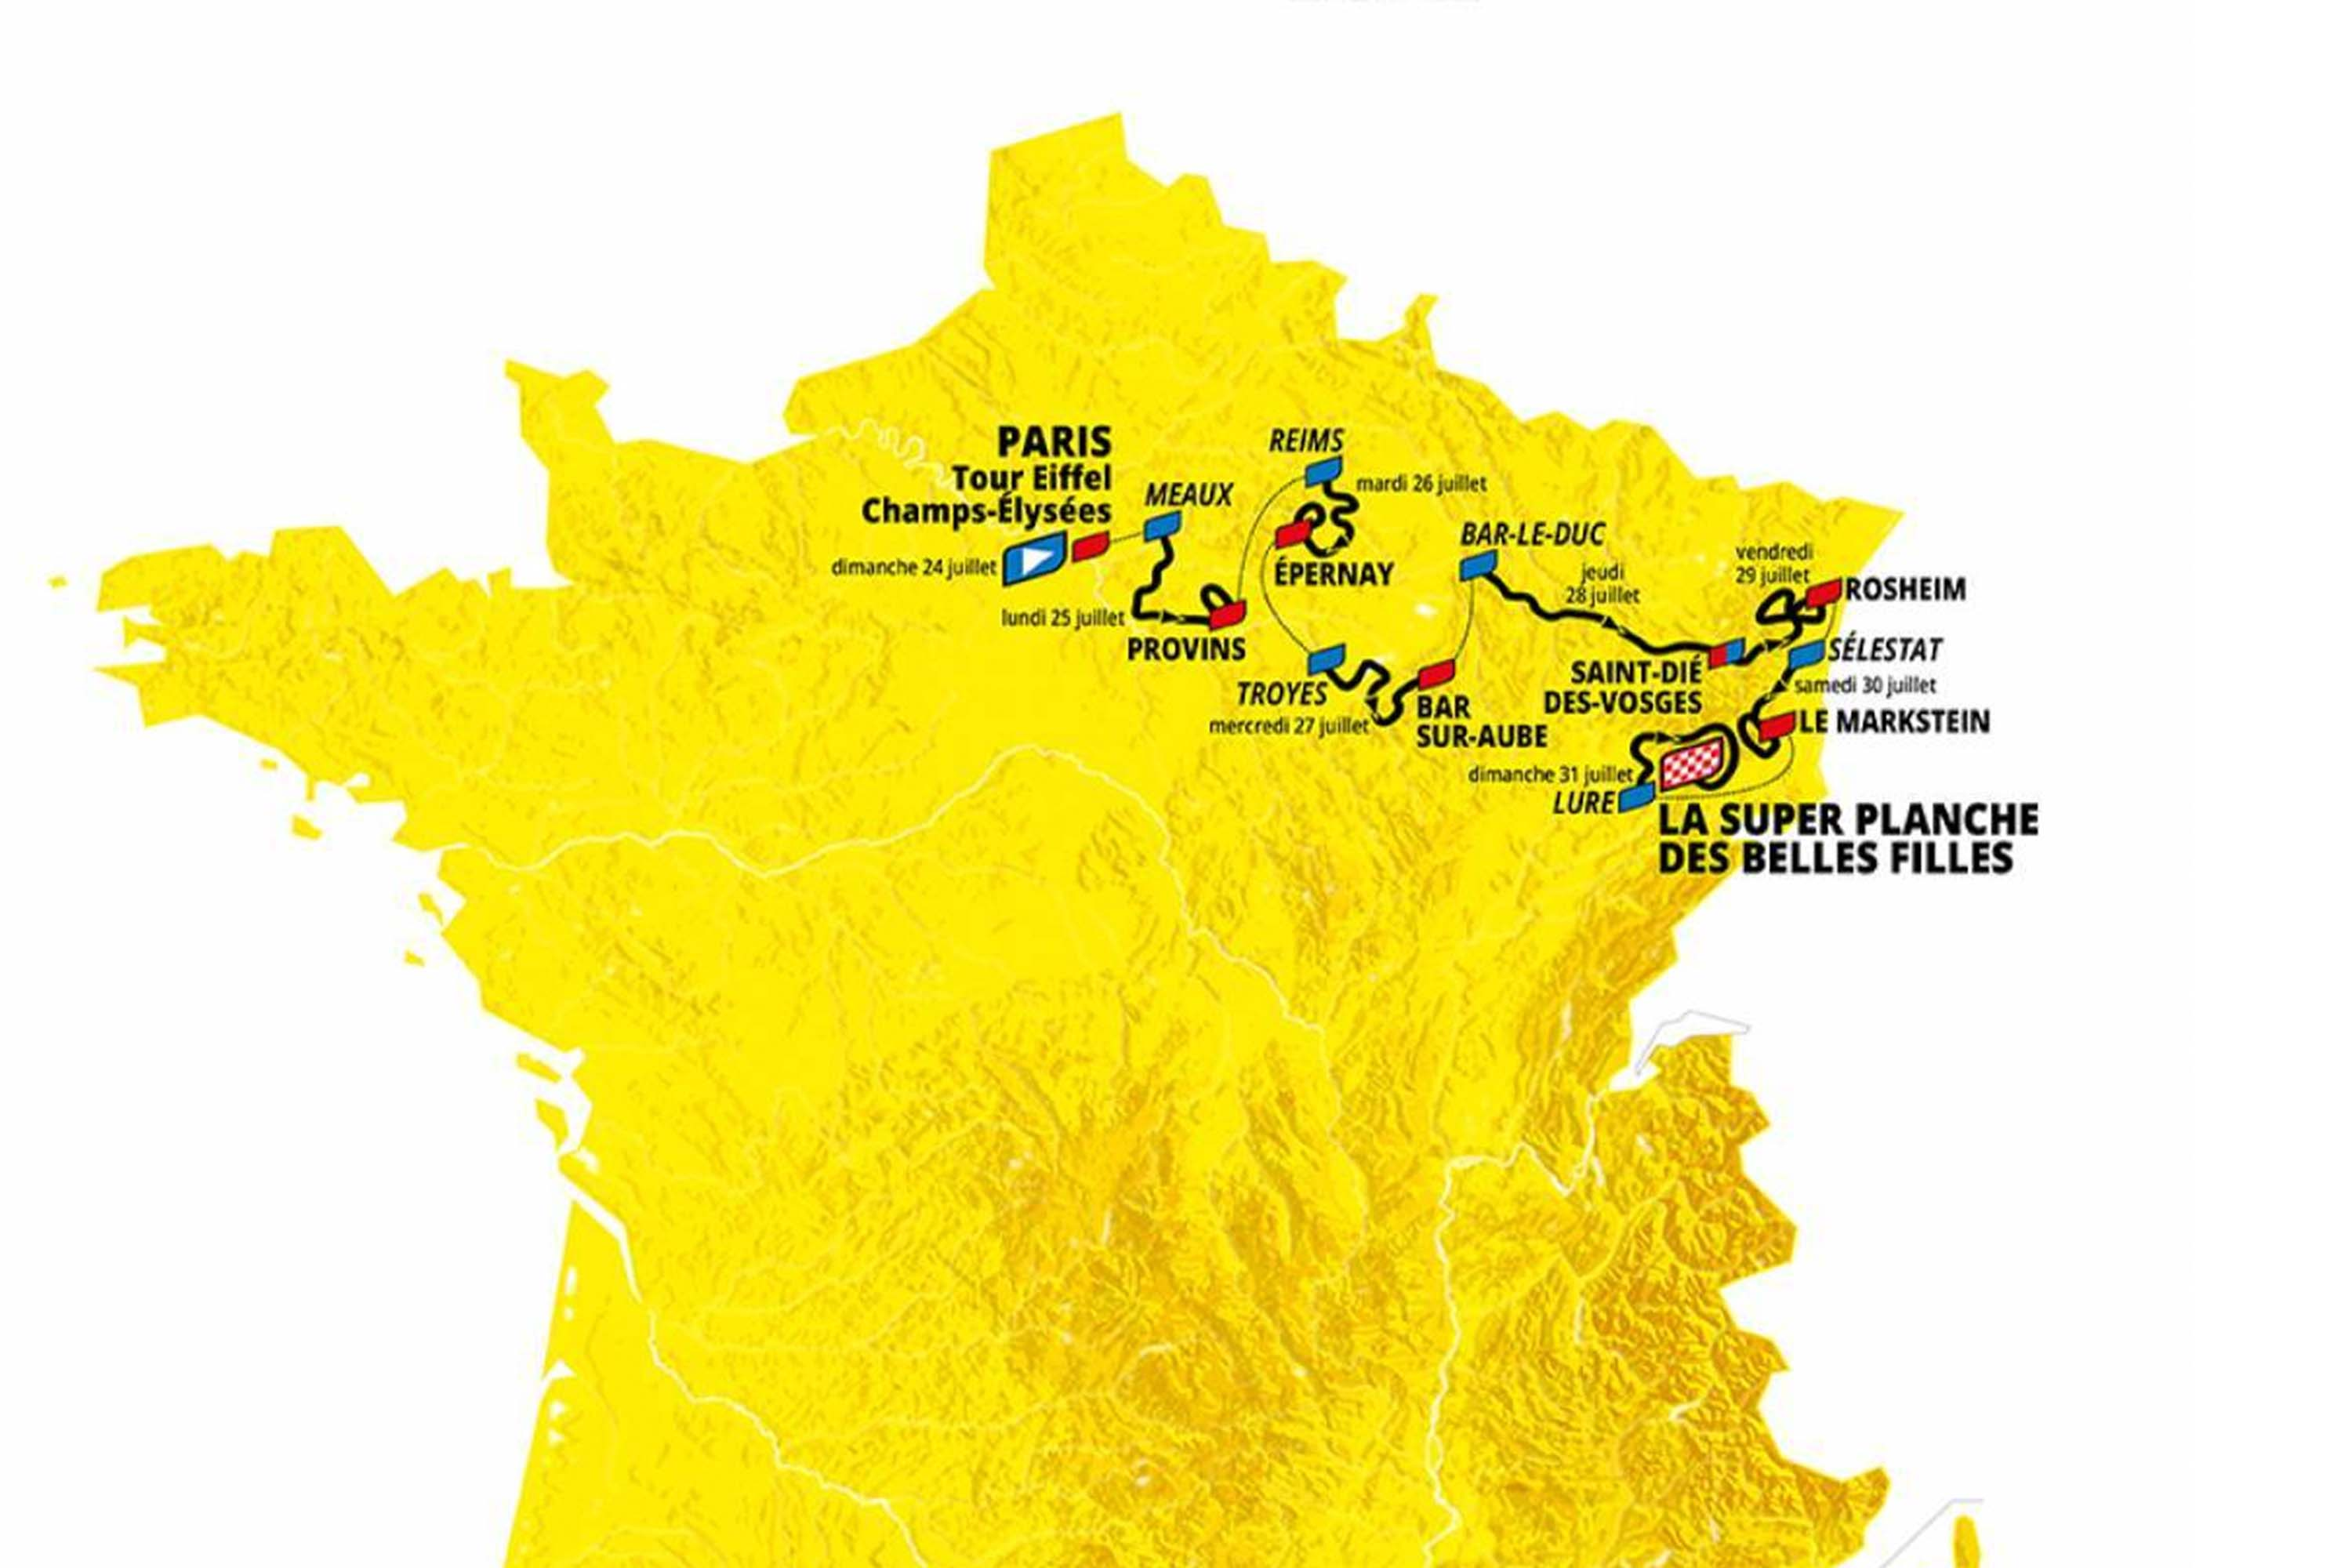 tour de france femmes route from paris to eastern france with start and finish dates imposed on a yellow map of france